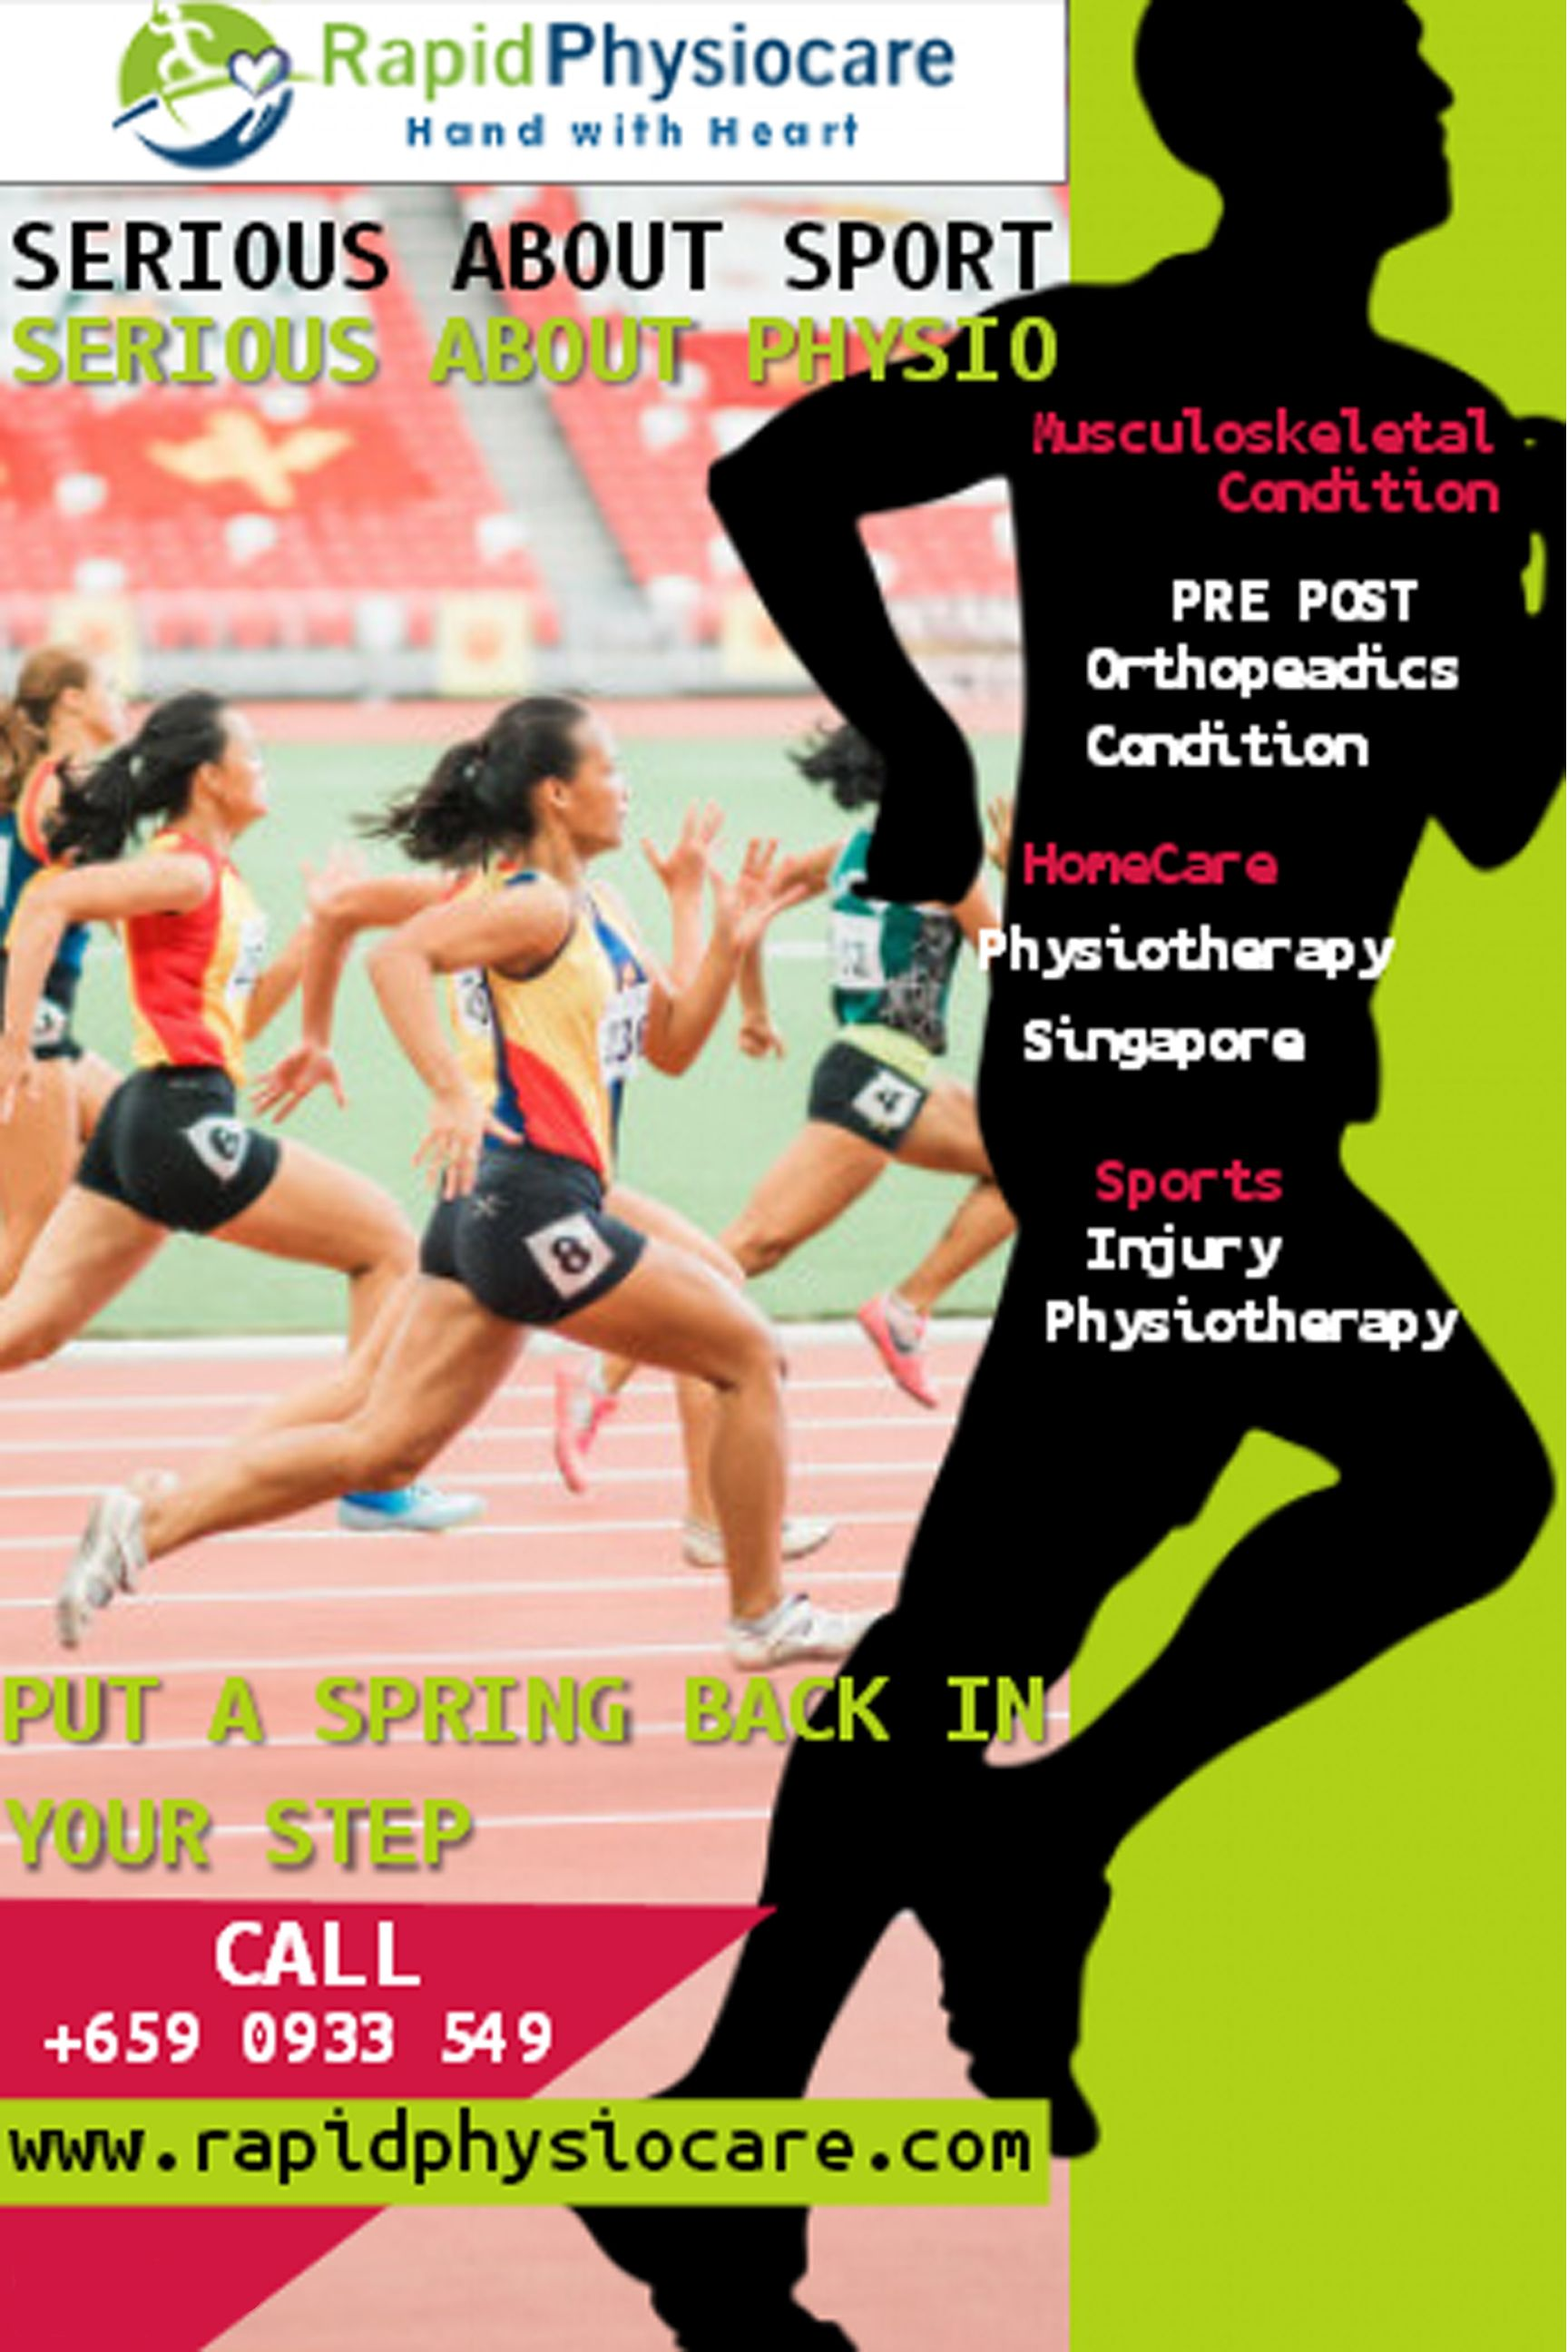 Physiotherapy Clinic Singapore Rapid Physiocare Tanjong